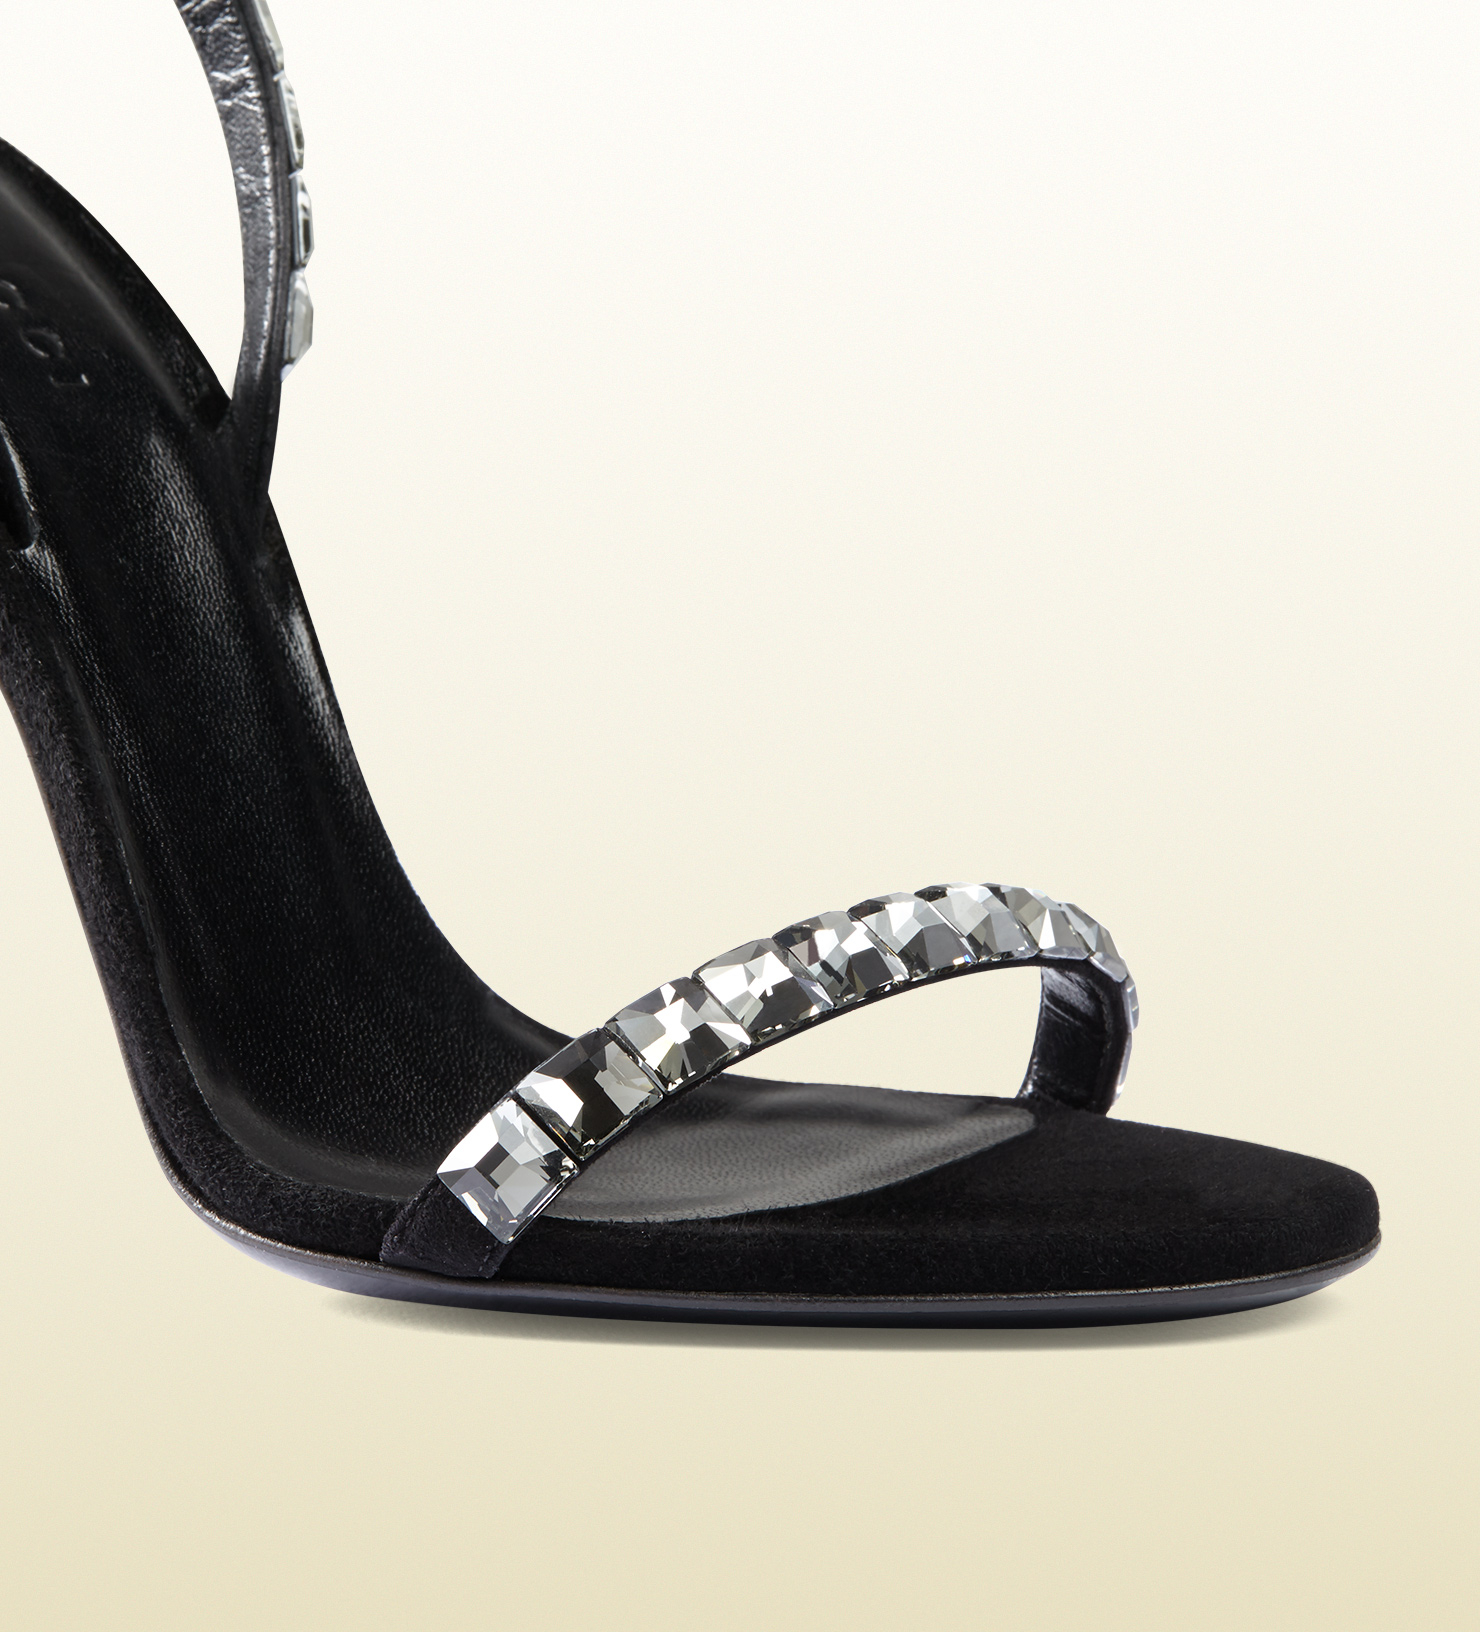 a5321041bda Lyst - Gucci Mallory Crystal Embellished Suede Sandals in Black